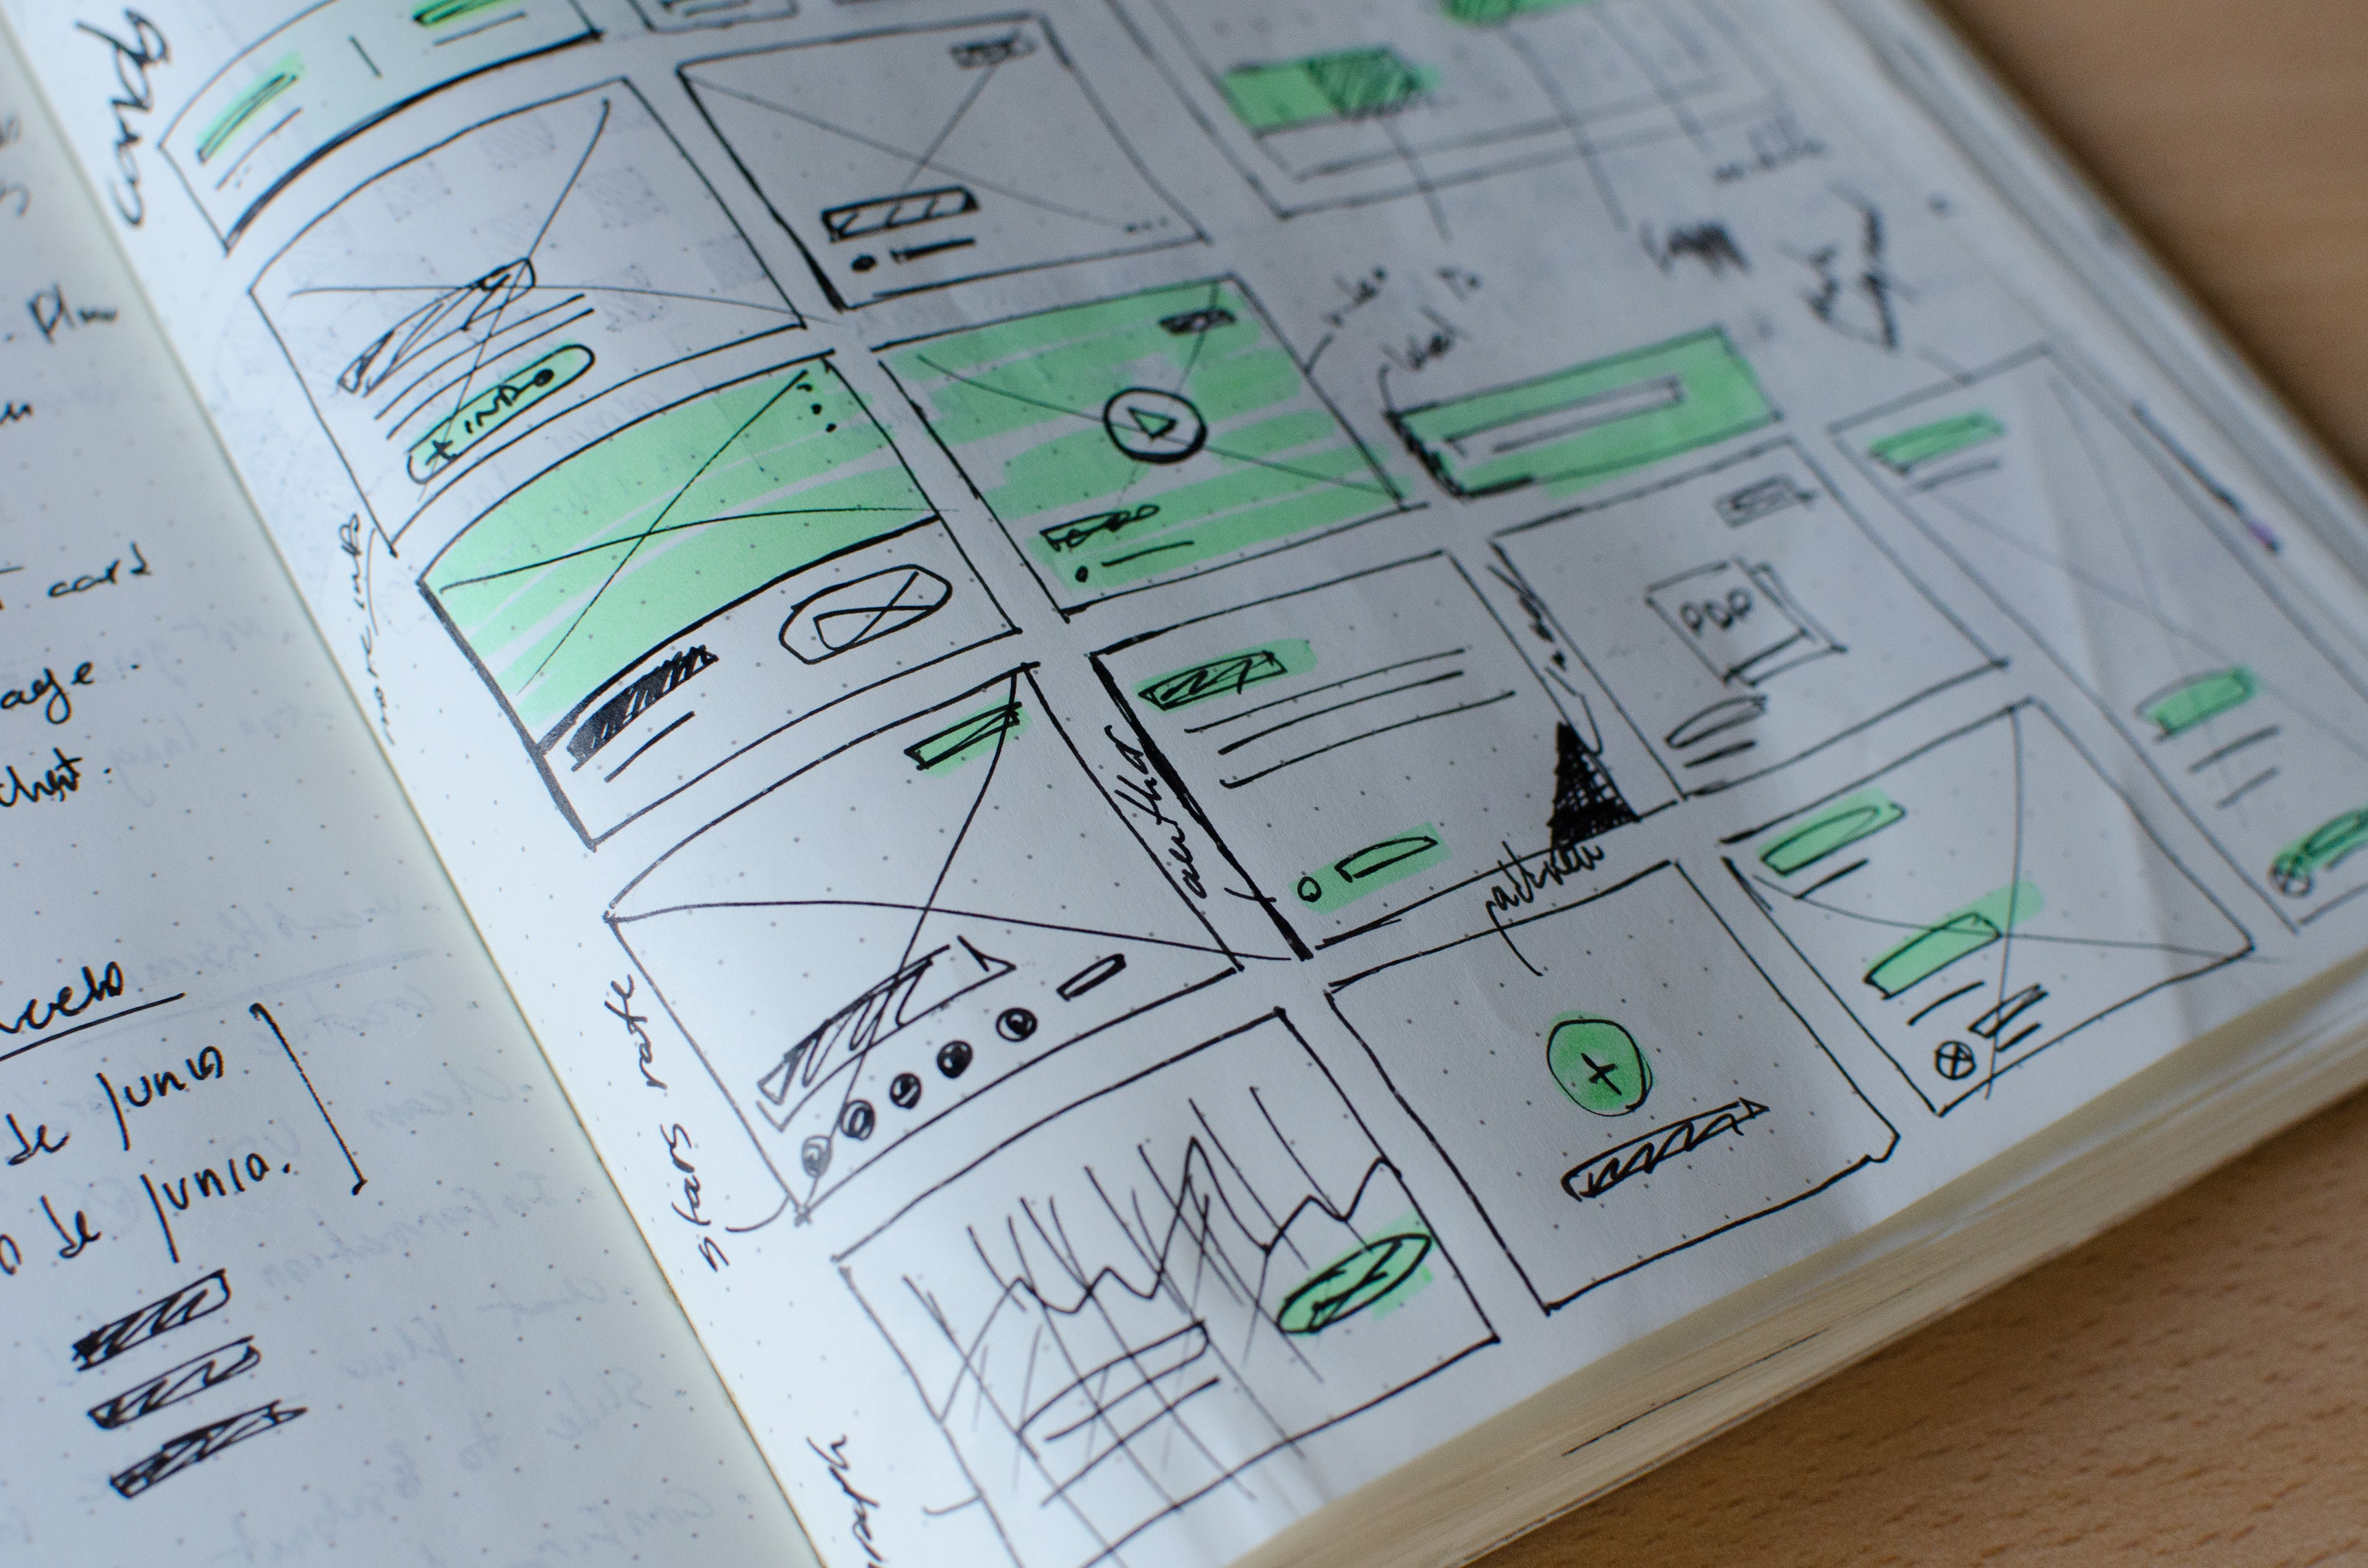 UX Design sketches